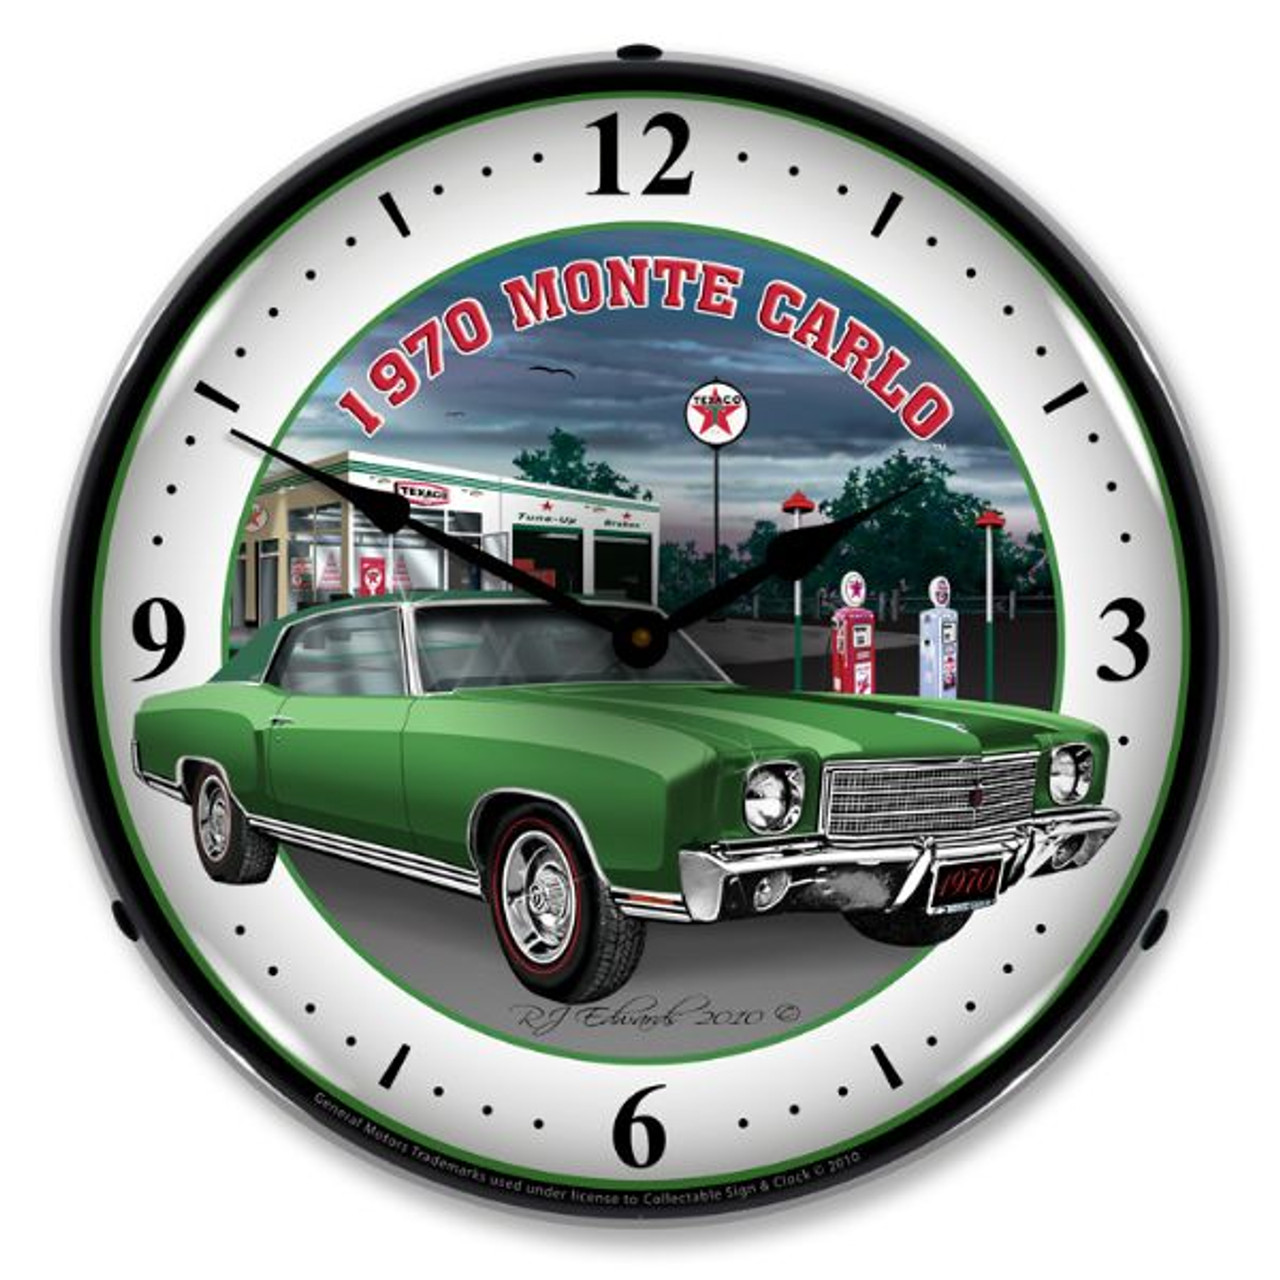 1970 Monte Carlo Green Lighted Wall Clock